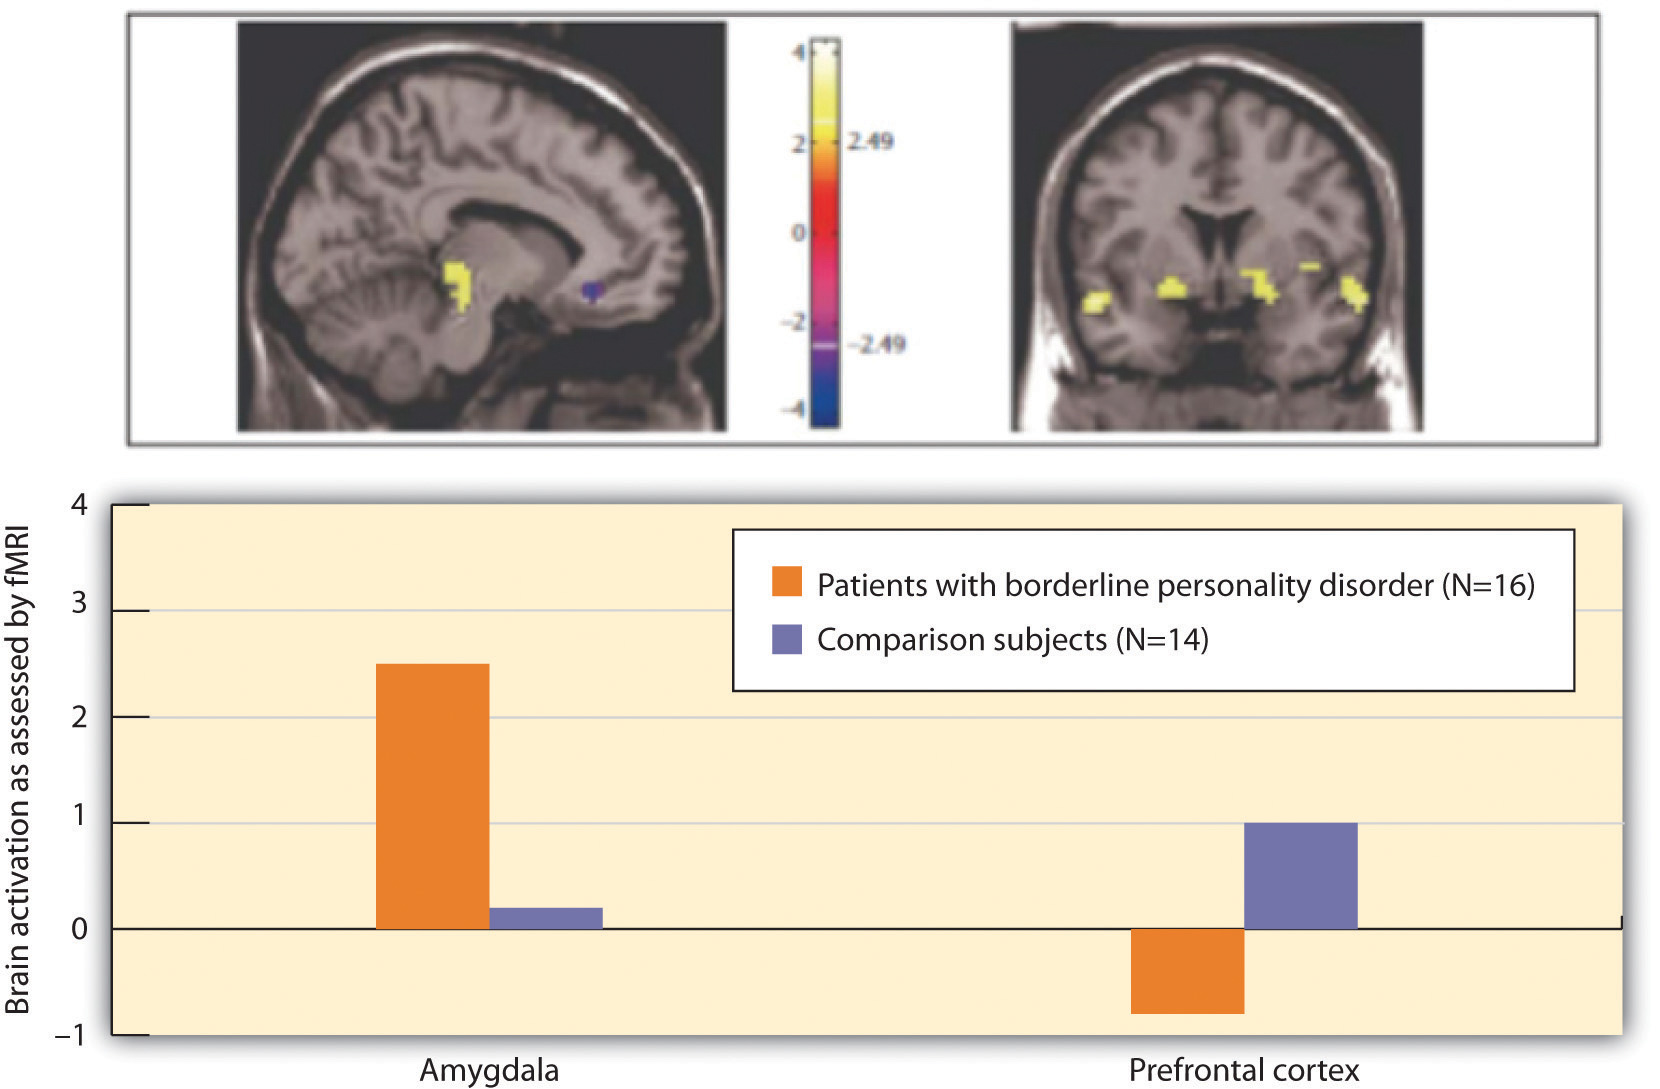 Above, these pictures show two brain scans comparing the level of brain activity in the emotional centres in the amygdala (left) and the prefrontal cortex (right); below, this chart contrasts brain activation as assessed by fMRI by amygdala and prefrontal cortex in patients with borderline personality disorder and comparison subjects.